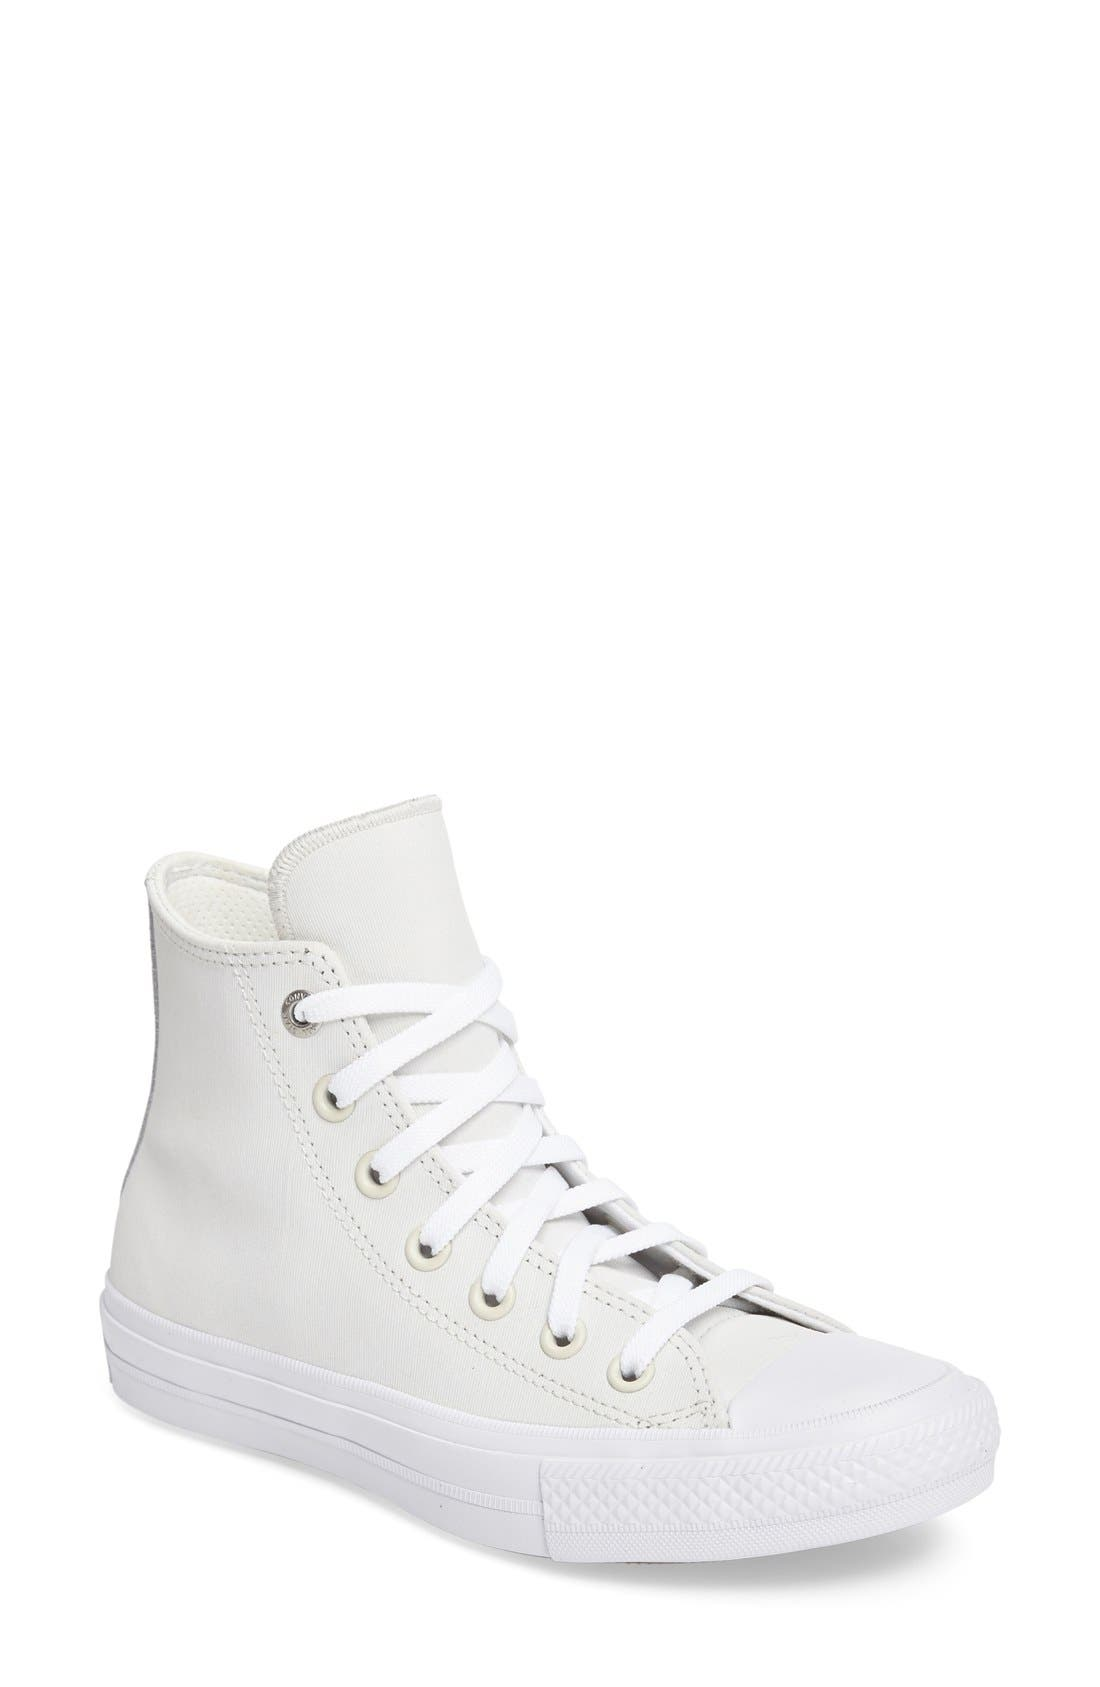 Chuck Taylor<sup>®</sup> All Star<sup>®</sup> II Two Tone High Top Sneaker,                             Main thumbnail 1, color,                             100